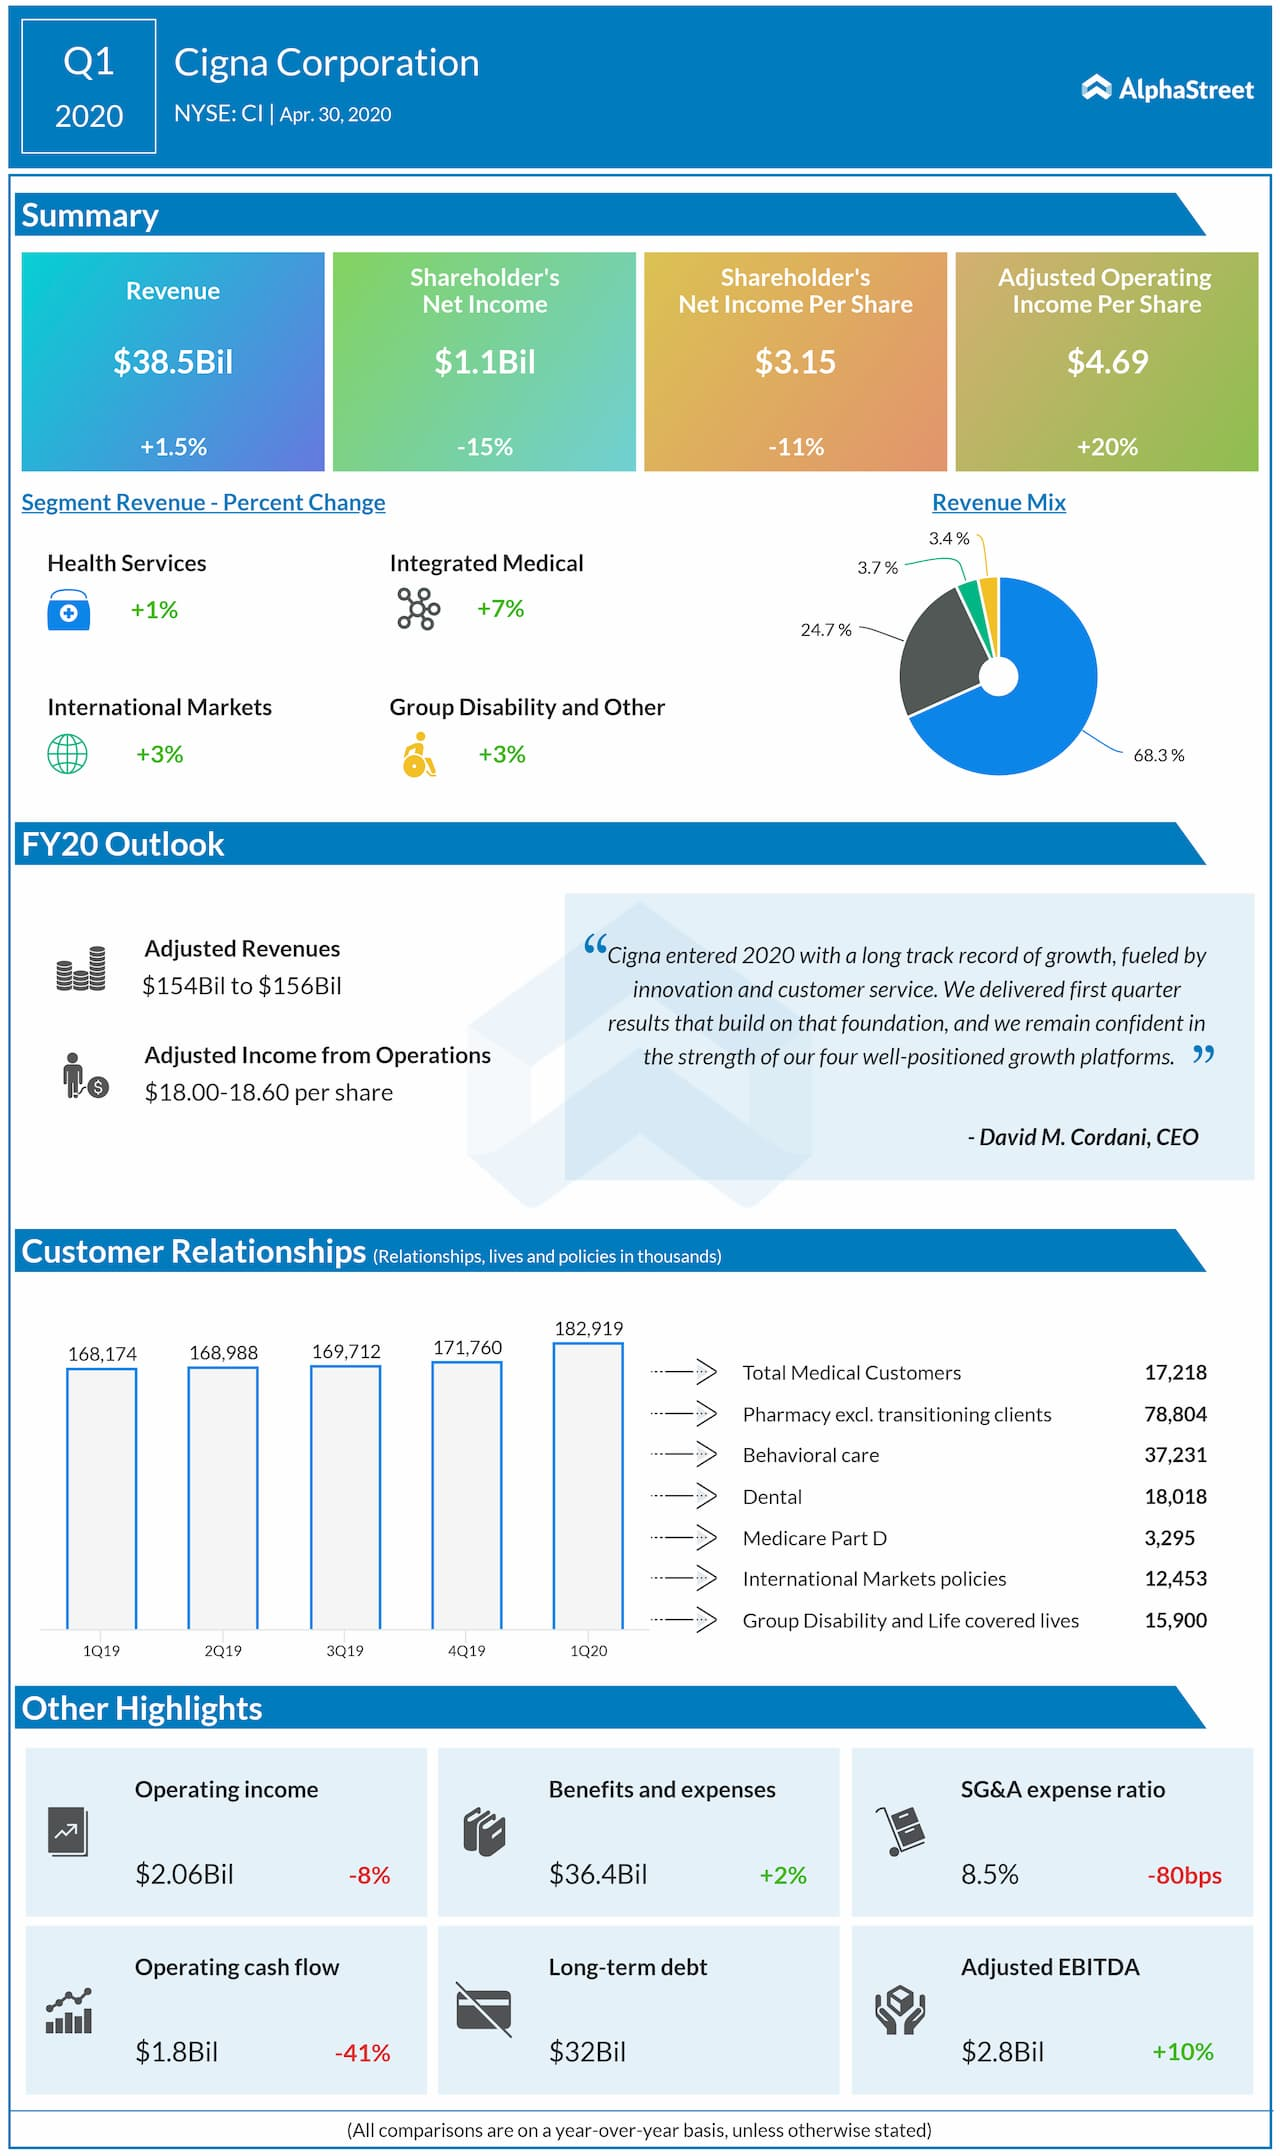 Cigna Corporation reports Q1 2020 earnings results